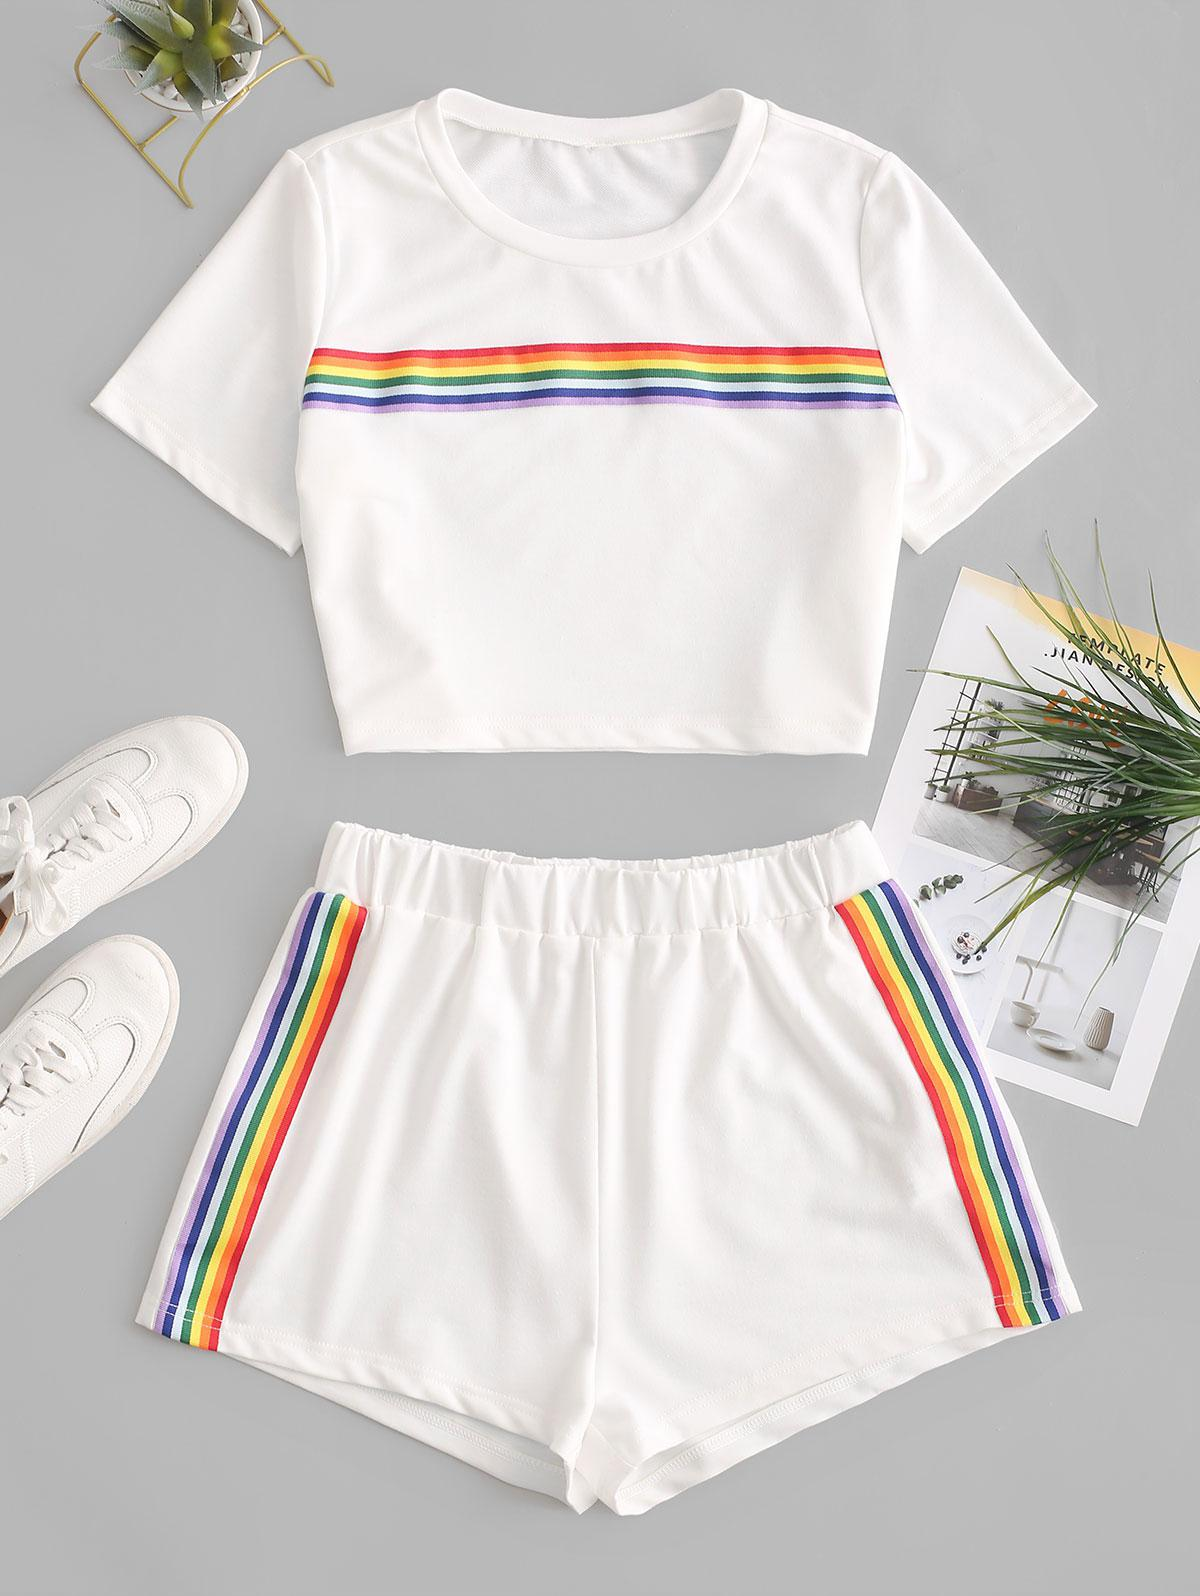 ZAFUL Rainbow Striped Patched Crop Two Pieces Suit фото